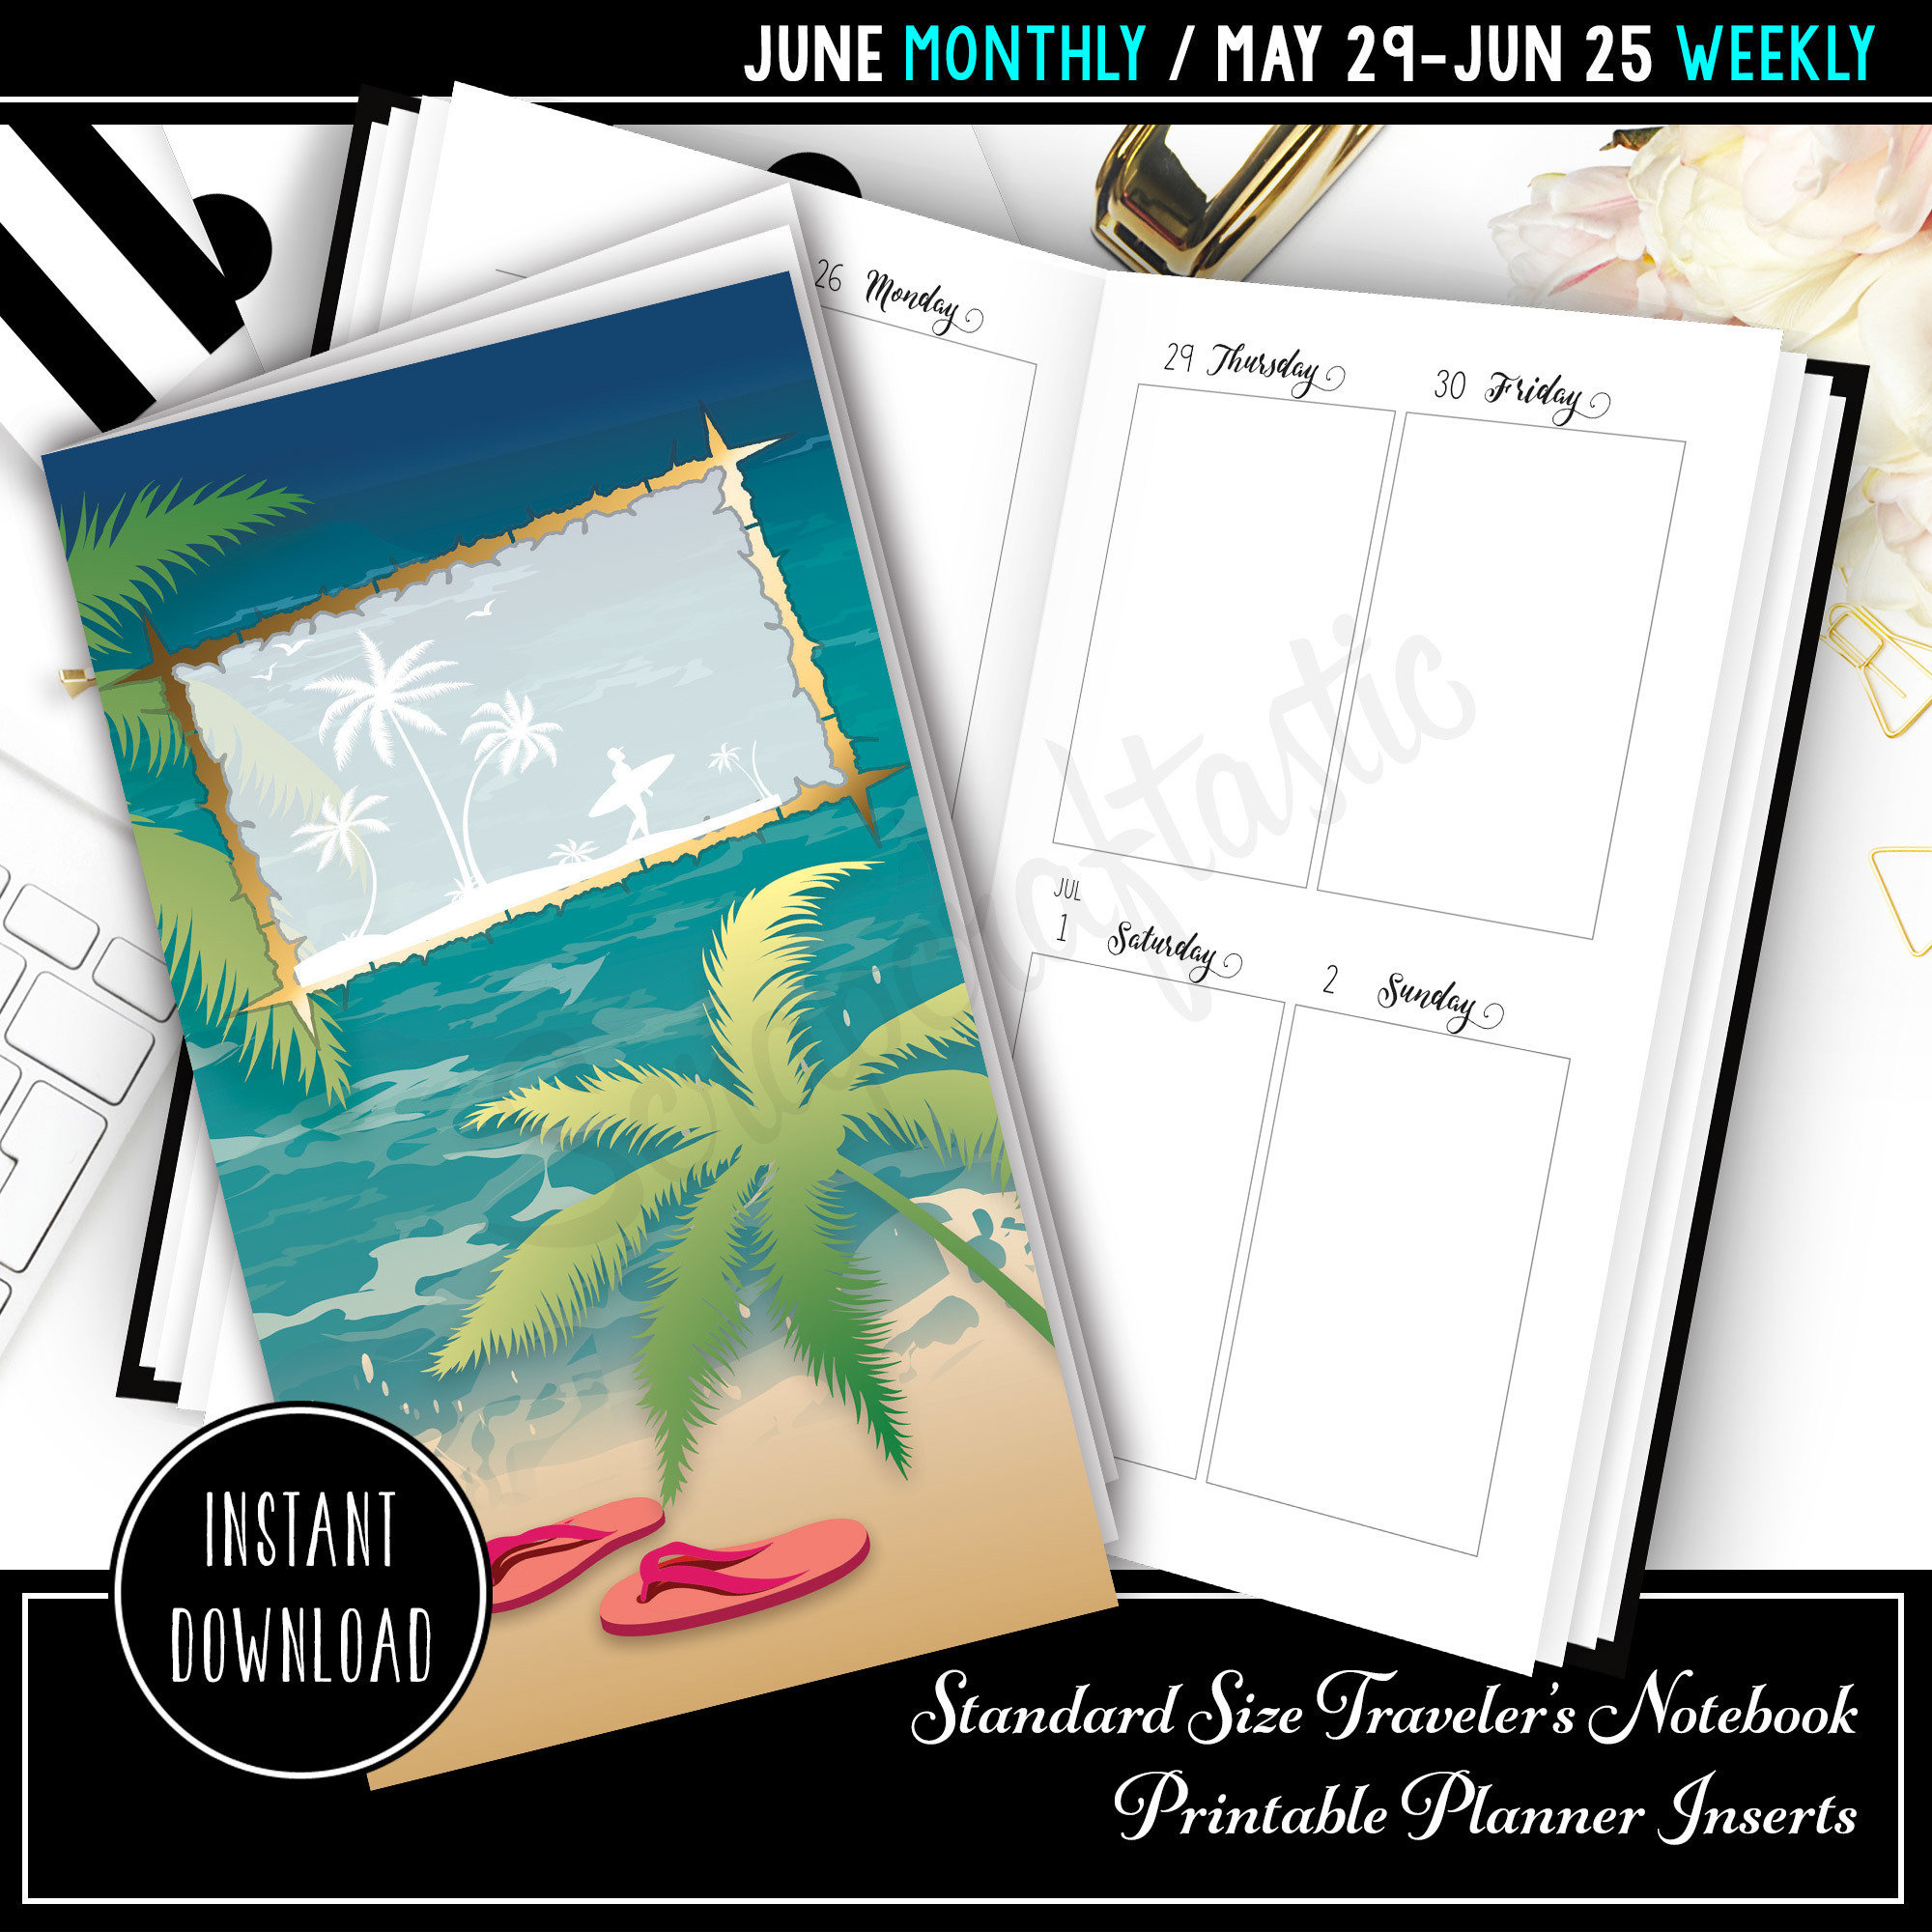 June 2017 Standard/Regular Traveler's Notebook Printable Planner Inserts 30002